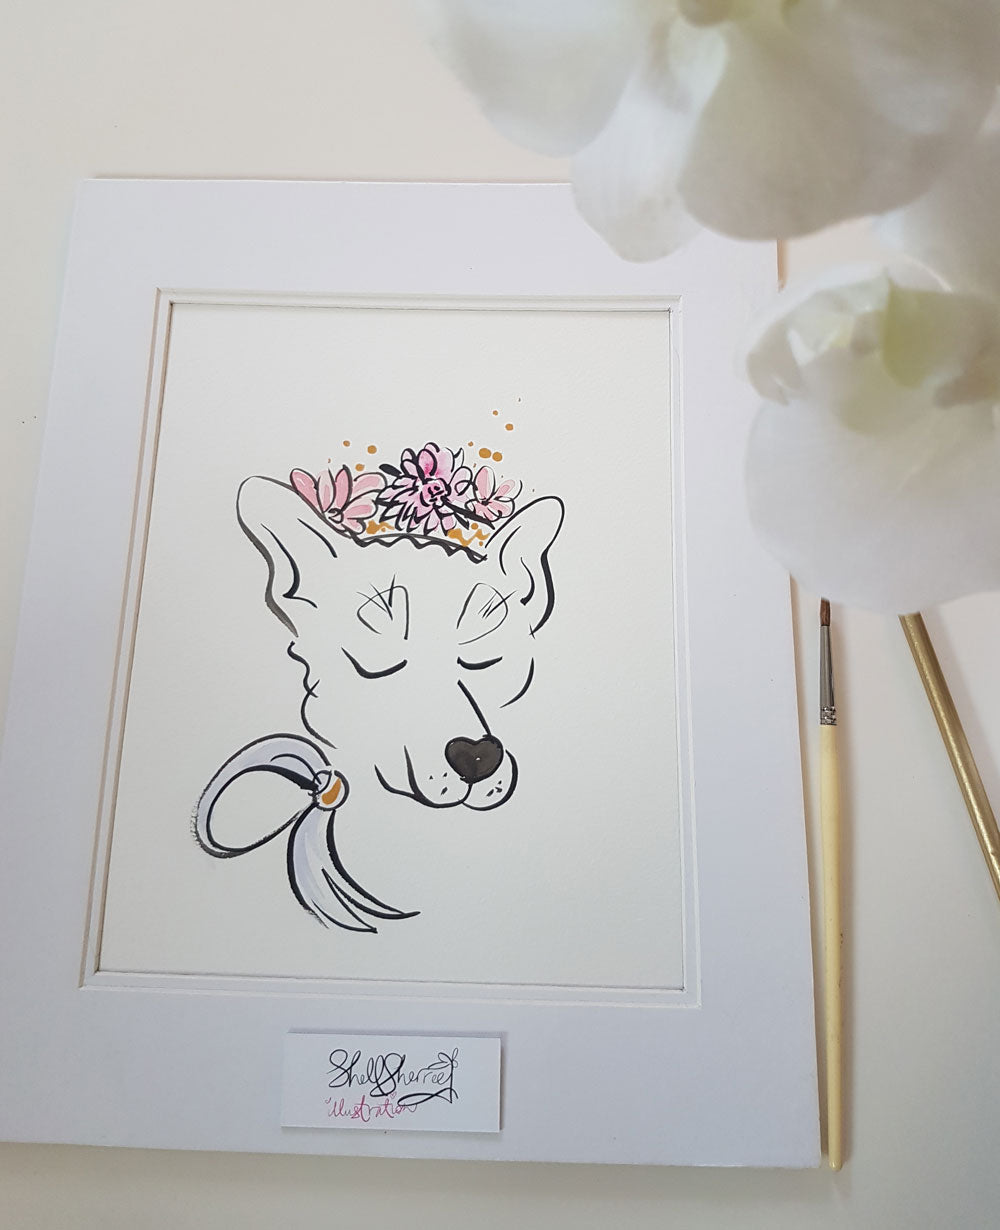 pooch dog original art by shell sherree